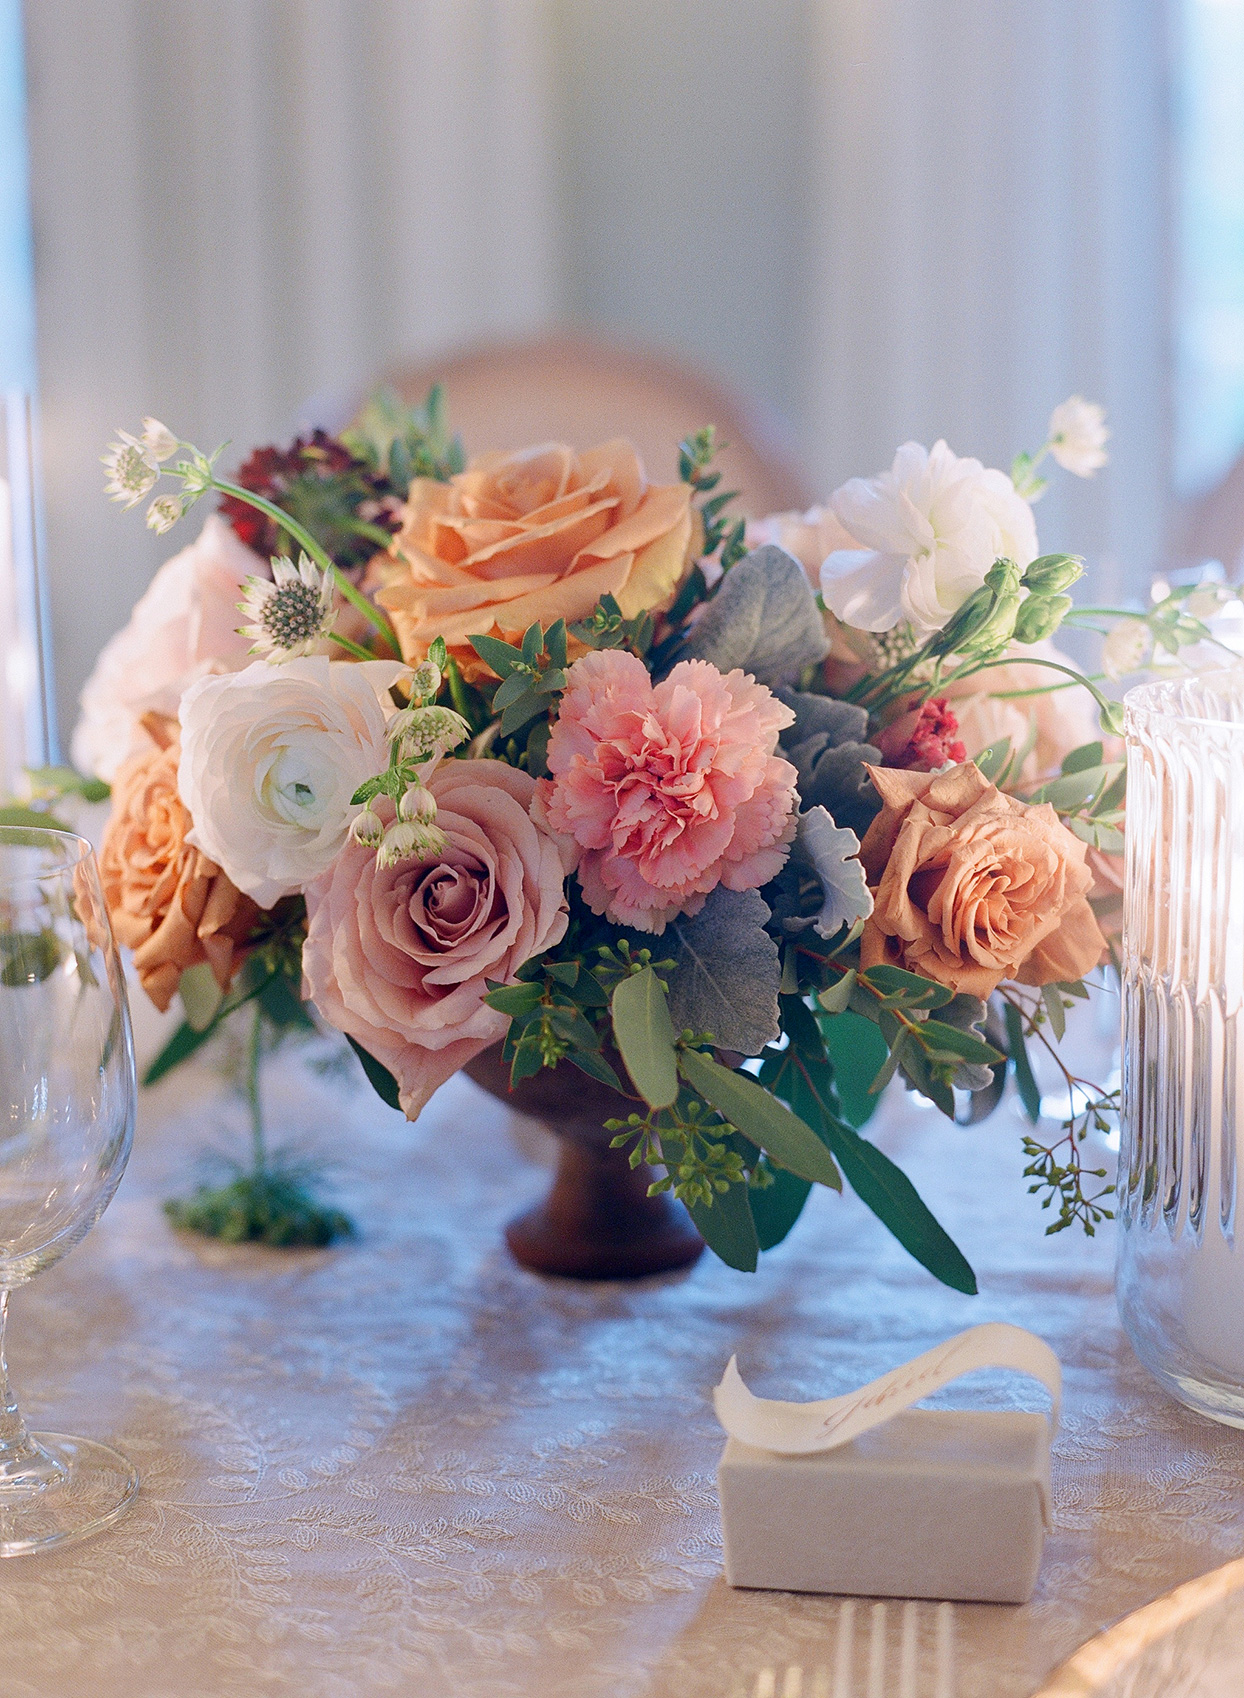 pastel floral wedding centerpiece on table